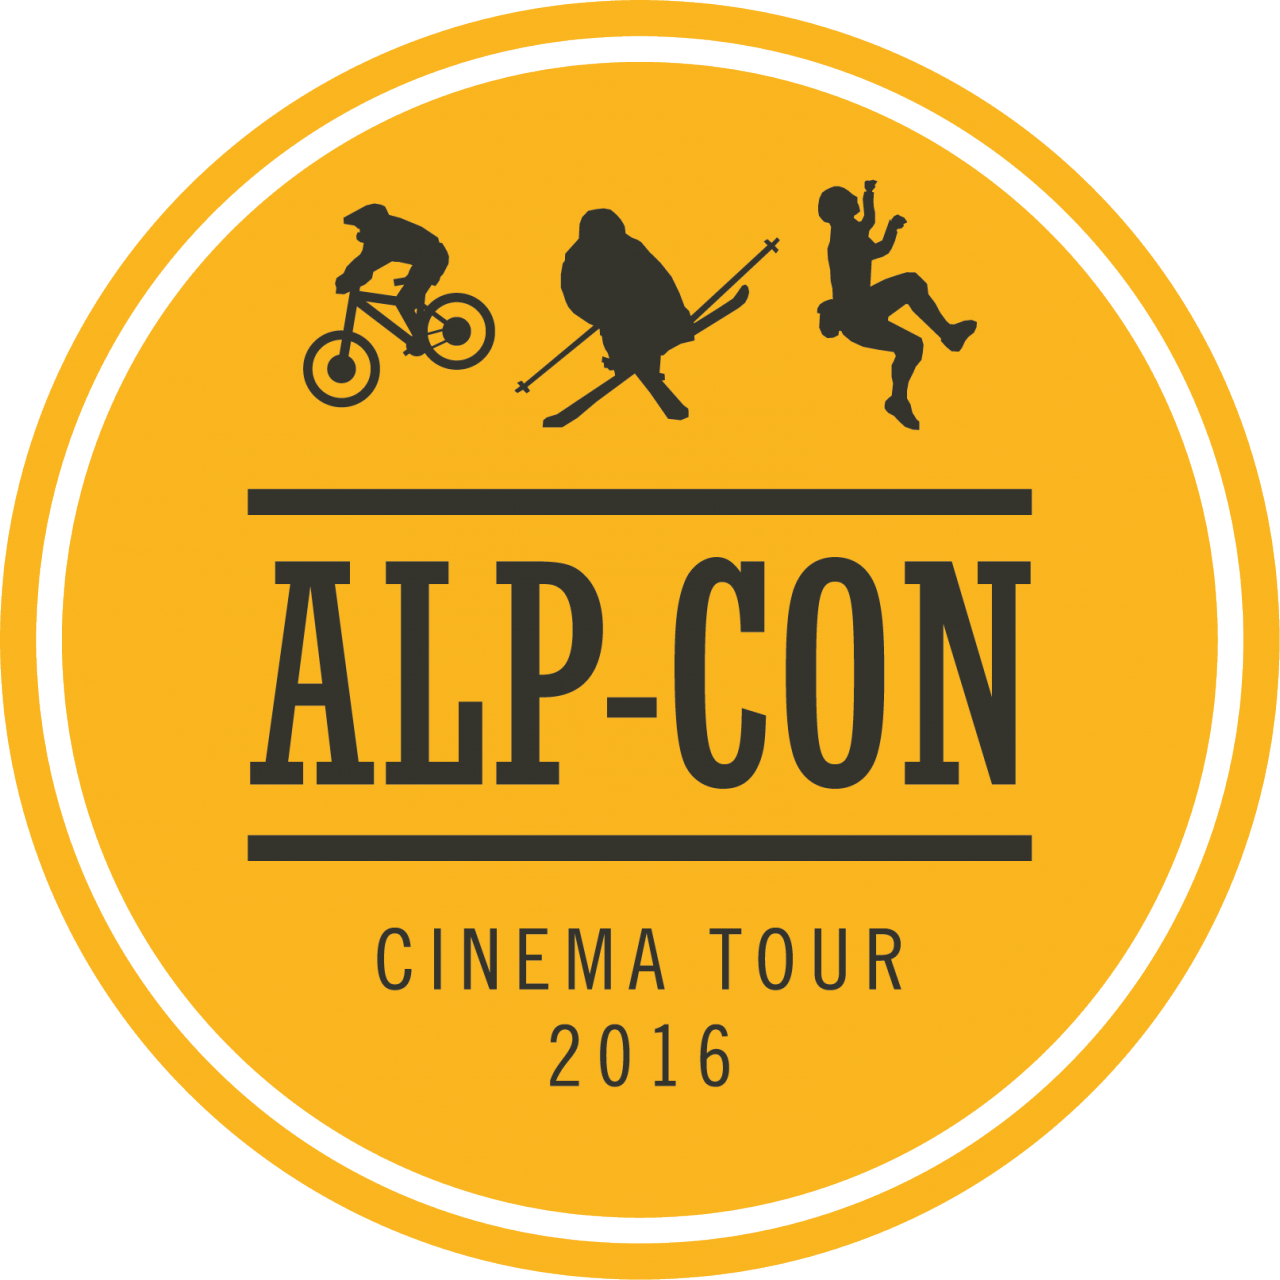 'Alp-Con CinemaTour 2016'